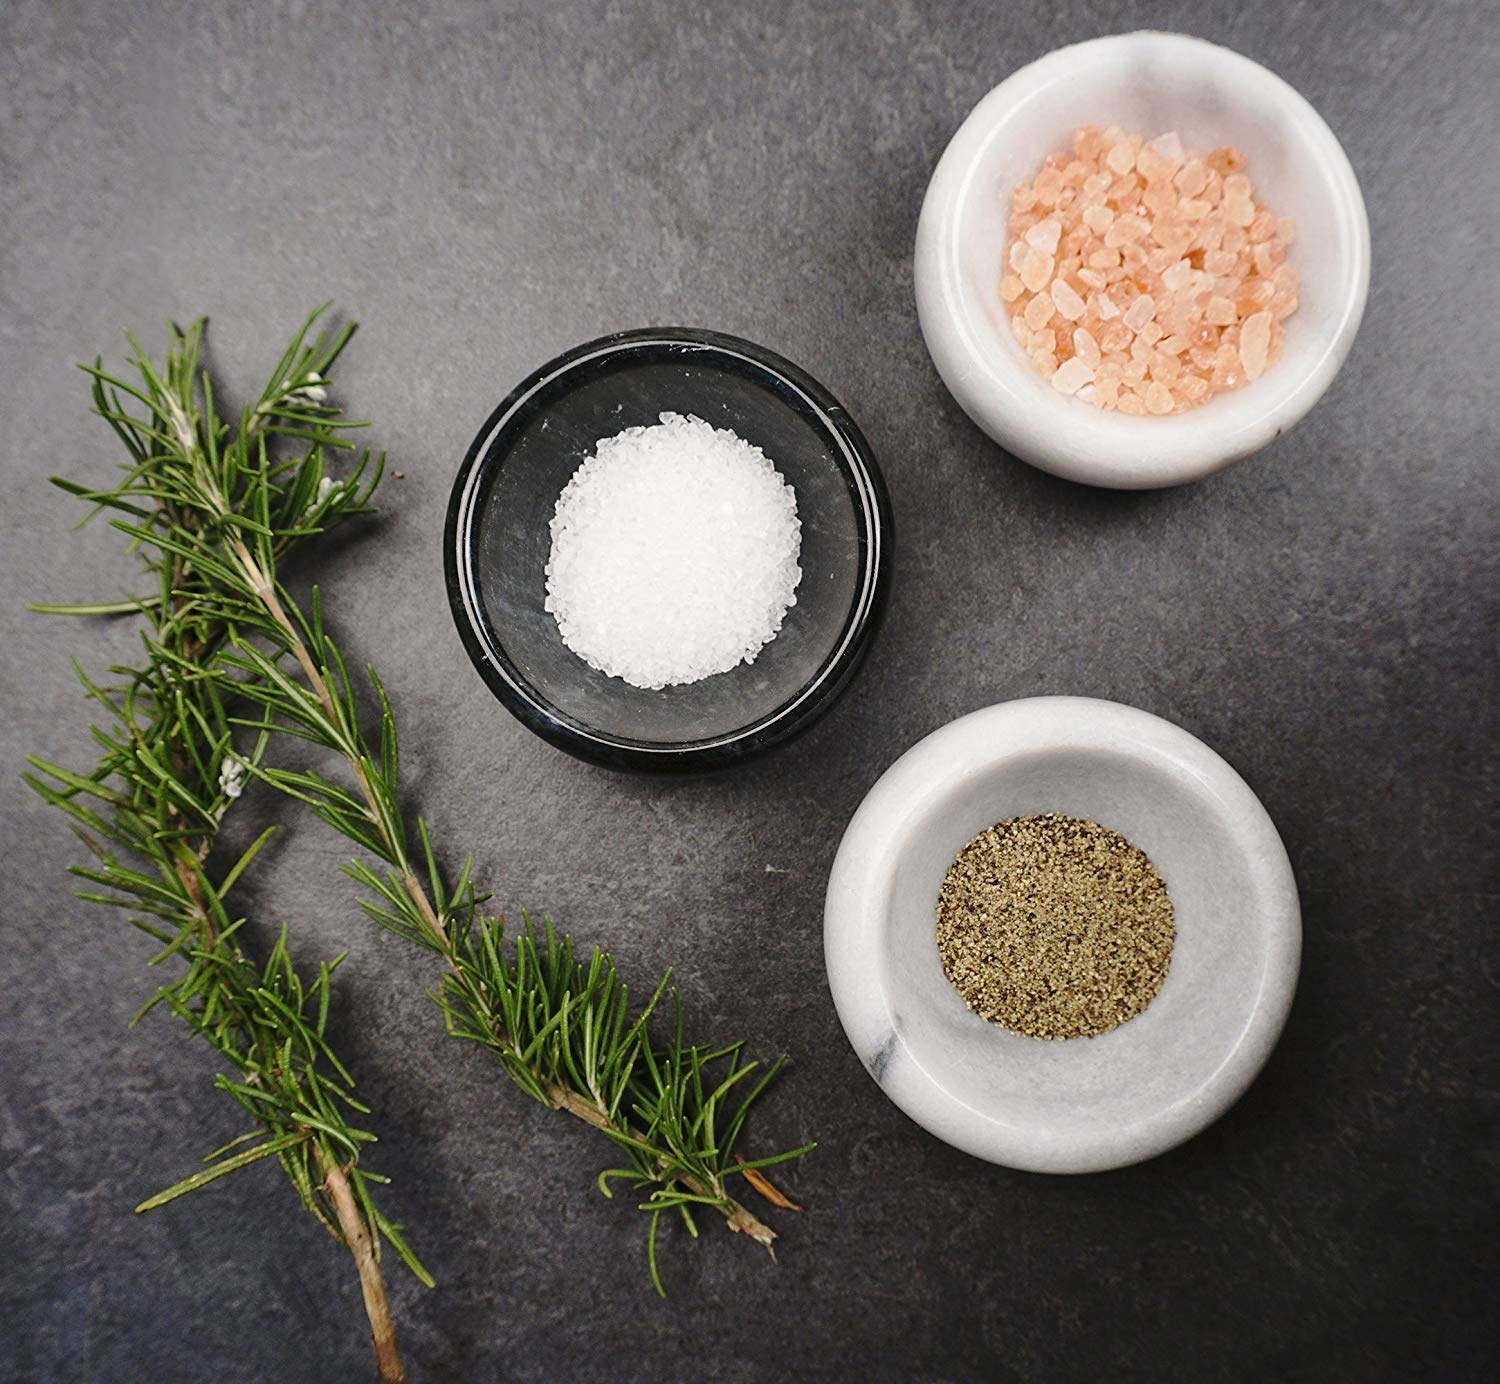 Top shot image of a sprig of thyme and marble bowls with different seasonings inside each